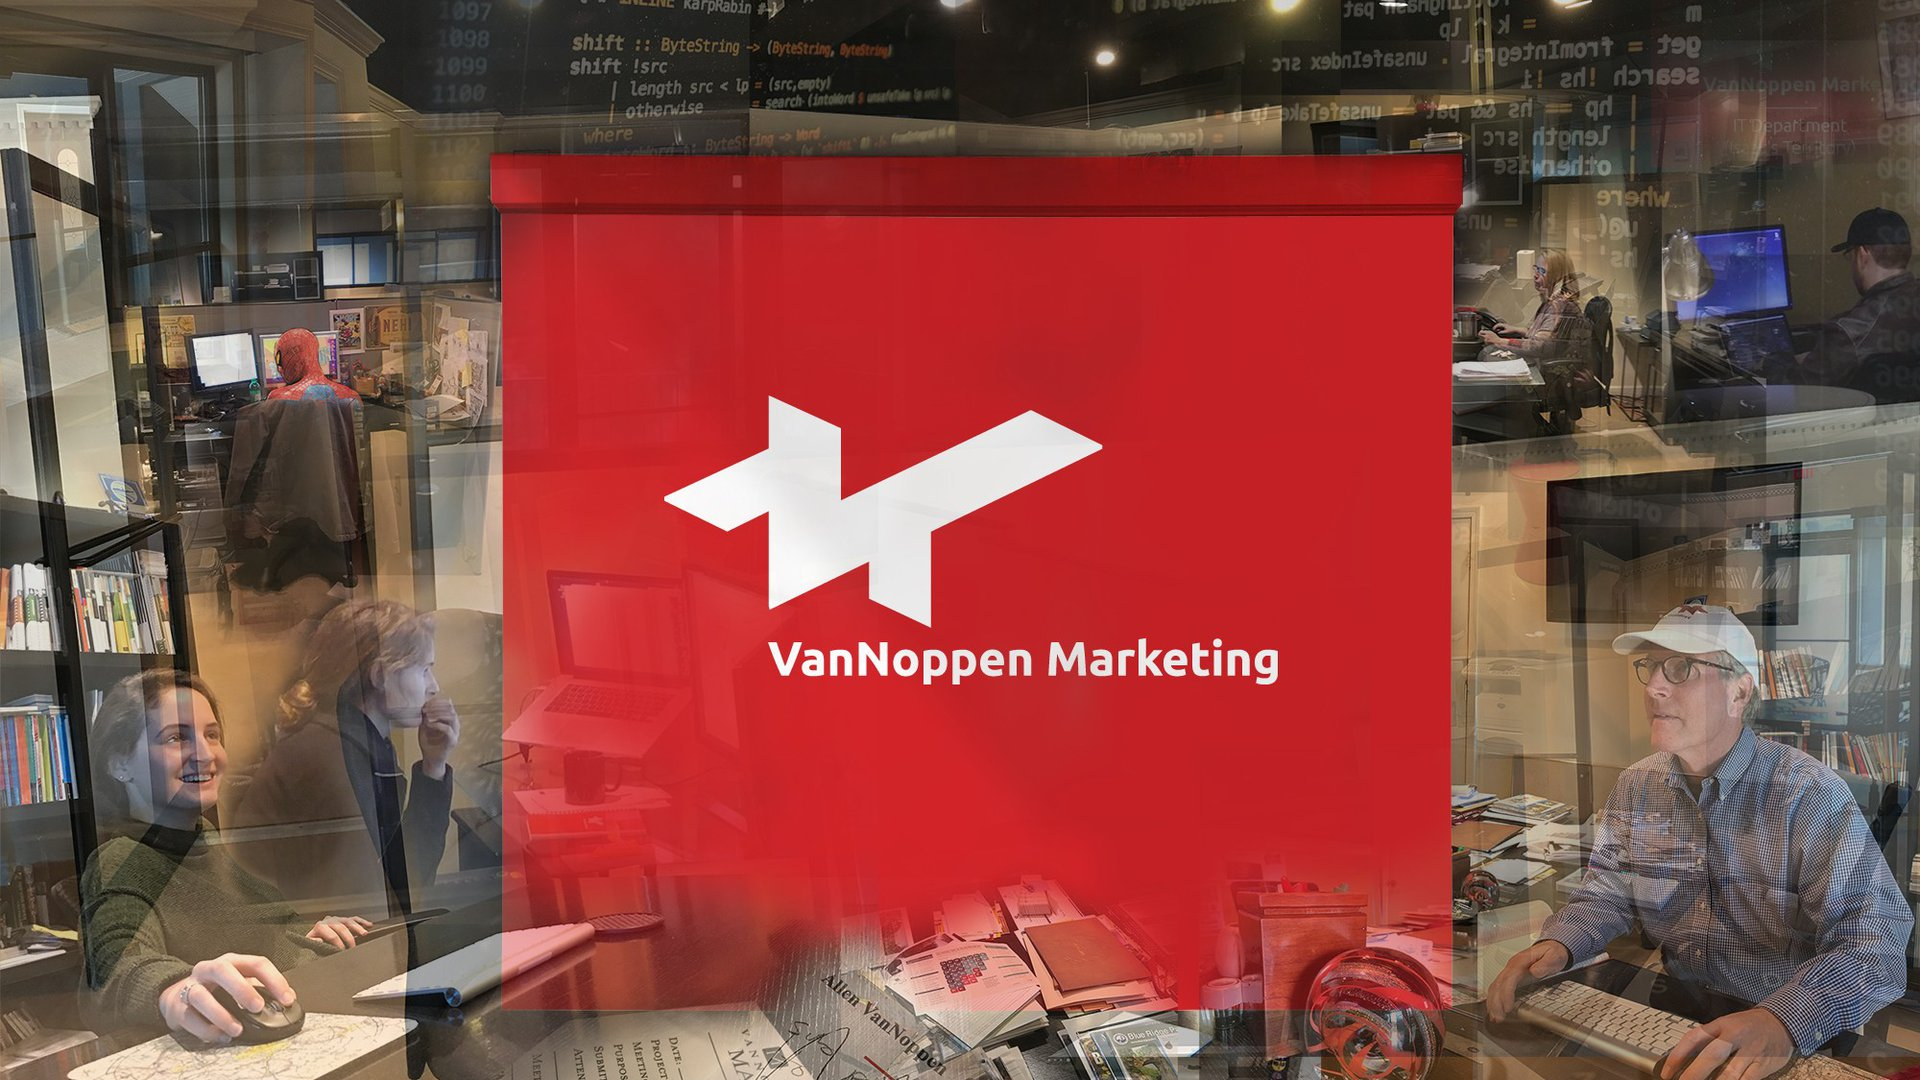 VanNoppen Marketing specializes in website design, website development, social media marketing, AdWords, graphic design, logos, and more.